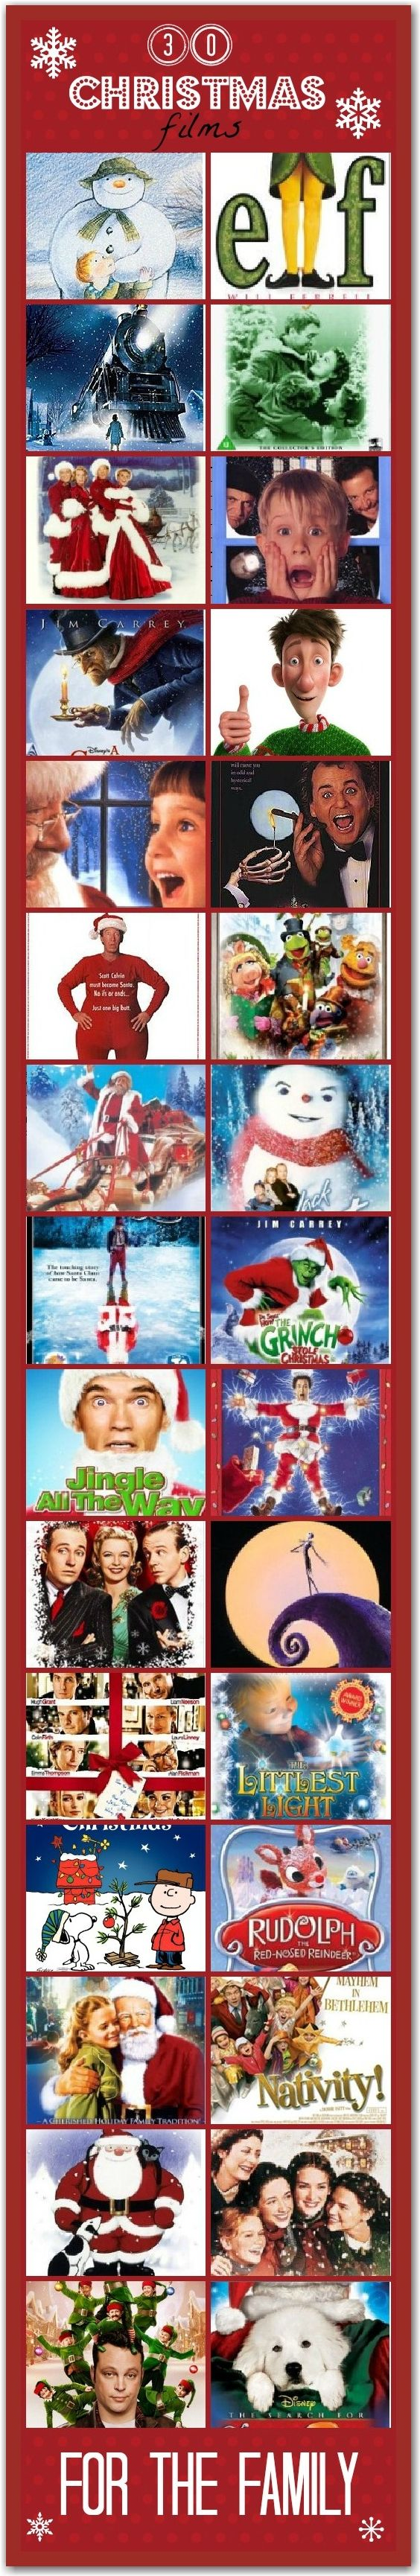 Lets do a movie countdown to Christmas! ❤